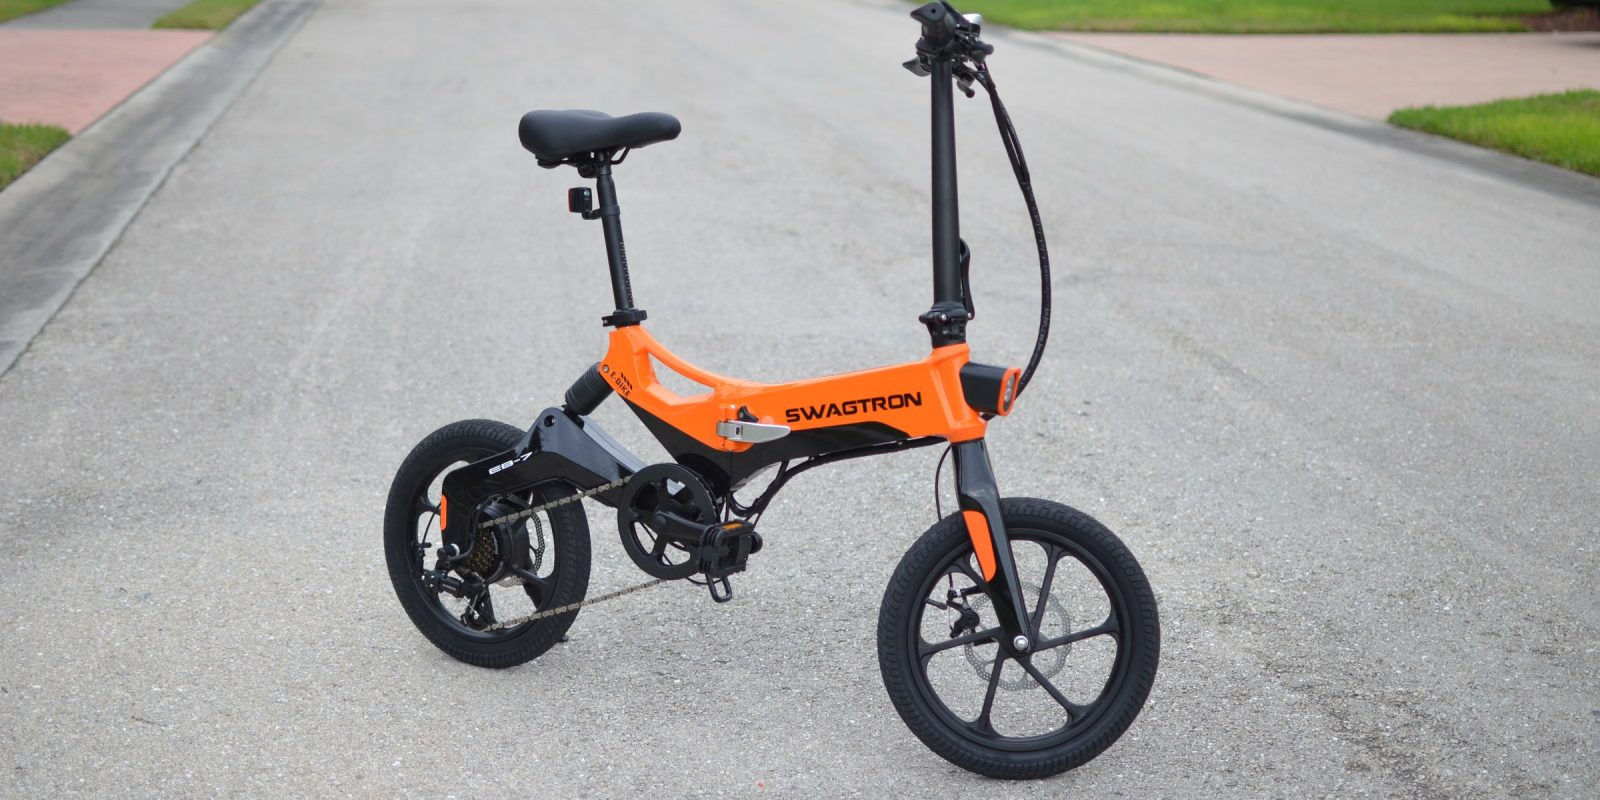 Swagtron EB7 Plus folding electric bike